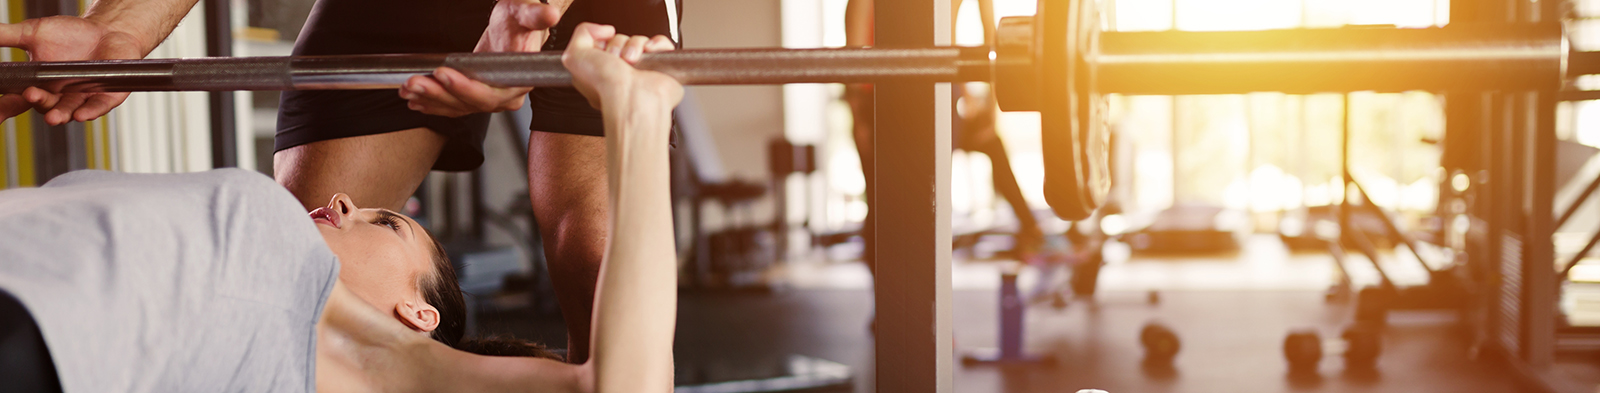 A woman benchpresses in the gym